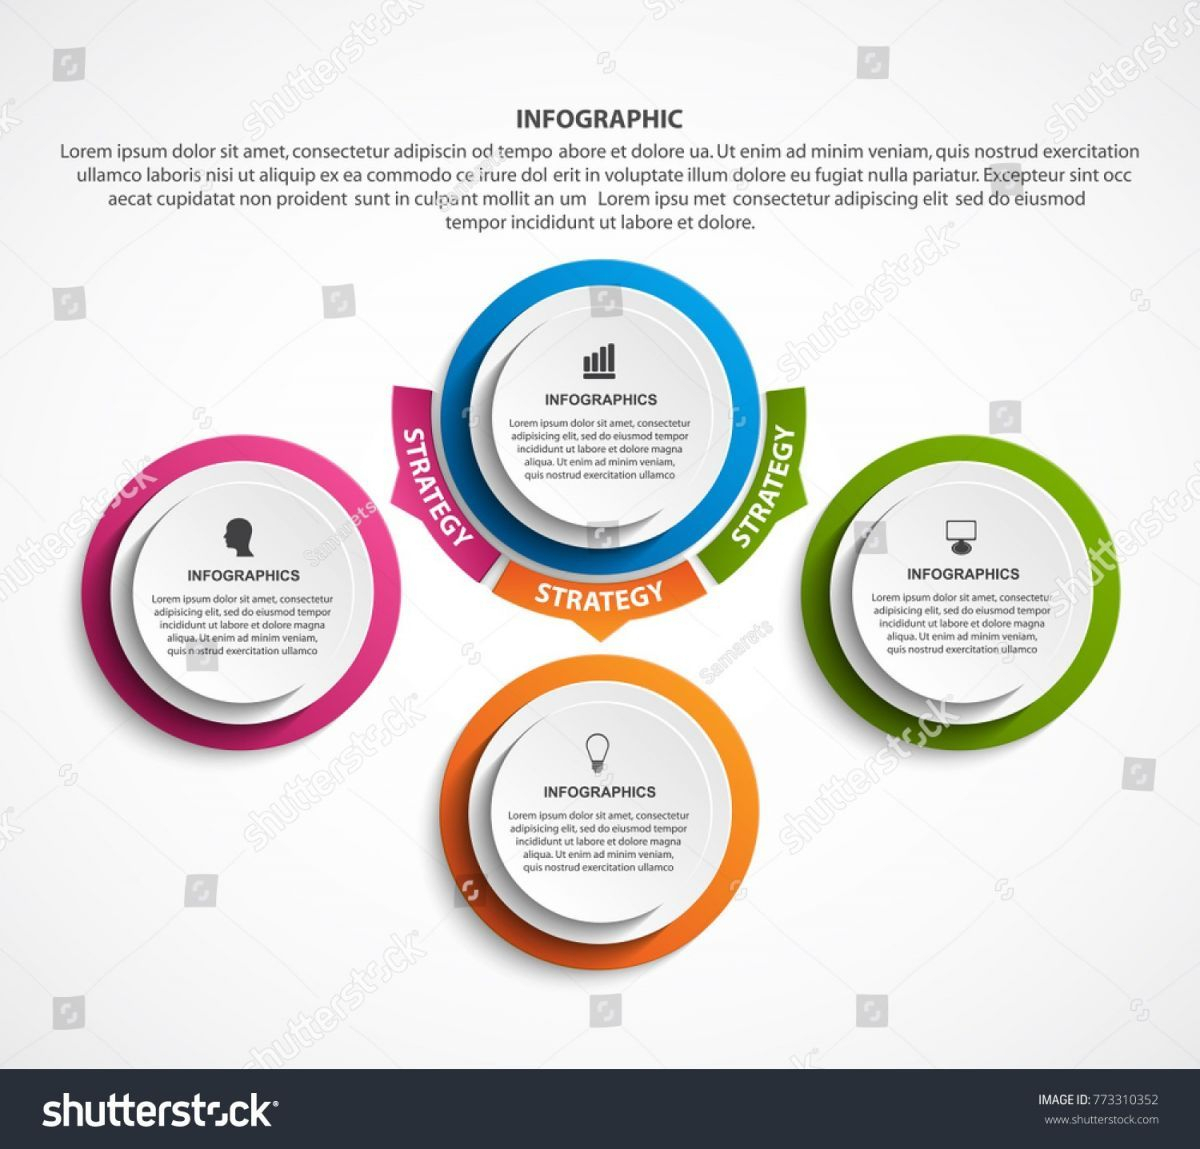 Resume Powerpoint Template - Biology Infographic – ¢Ë†Å¡ Resume Free Ppt Templates Awesome Ppt 0d